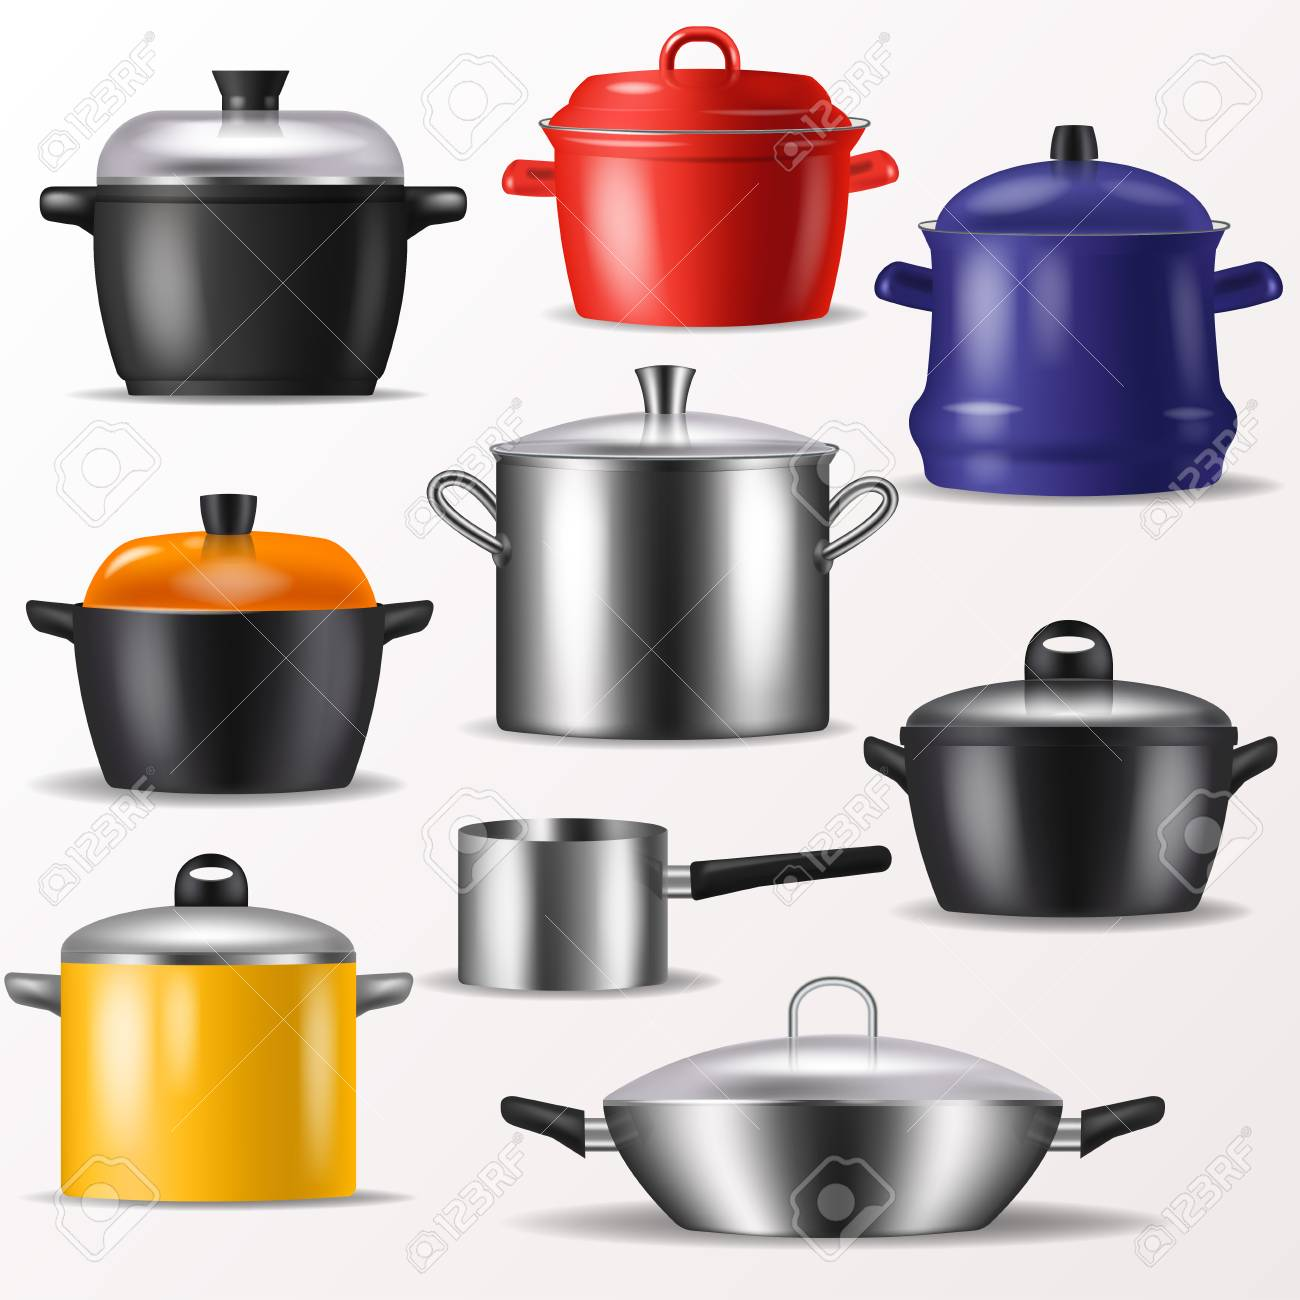 Pan Vector Kitchenware Or Cookware For Cooking Food And Kitchen